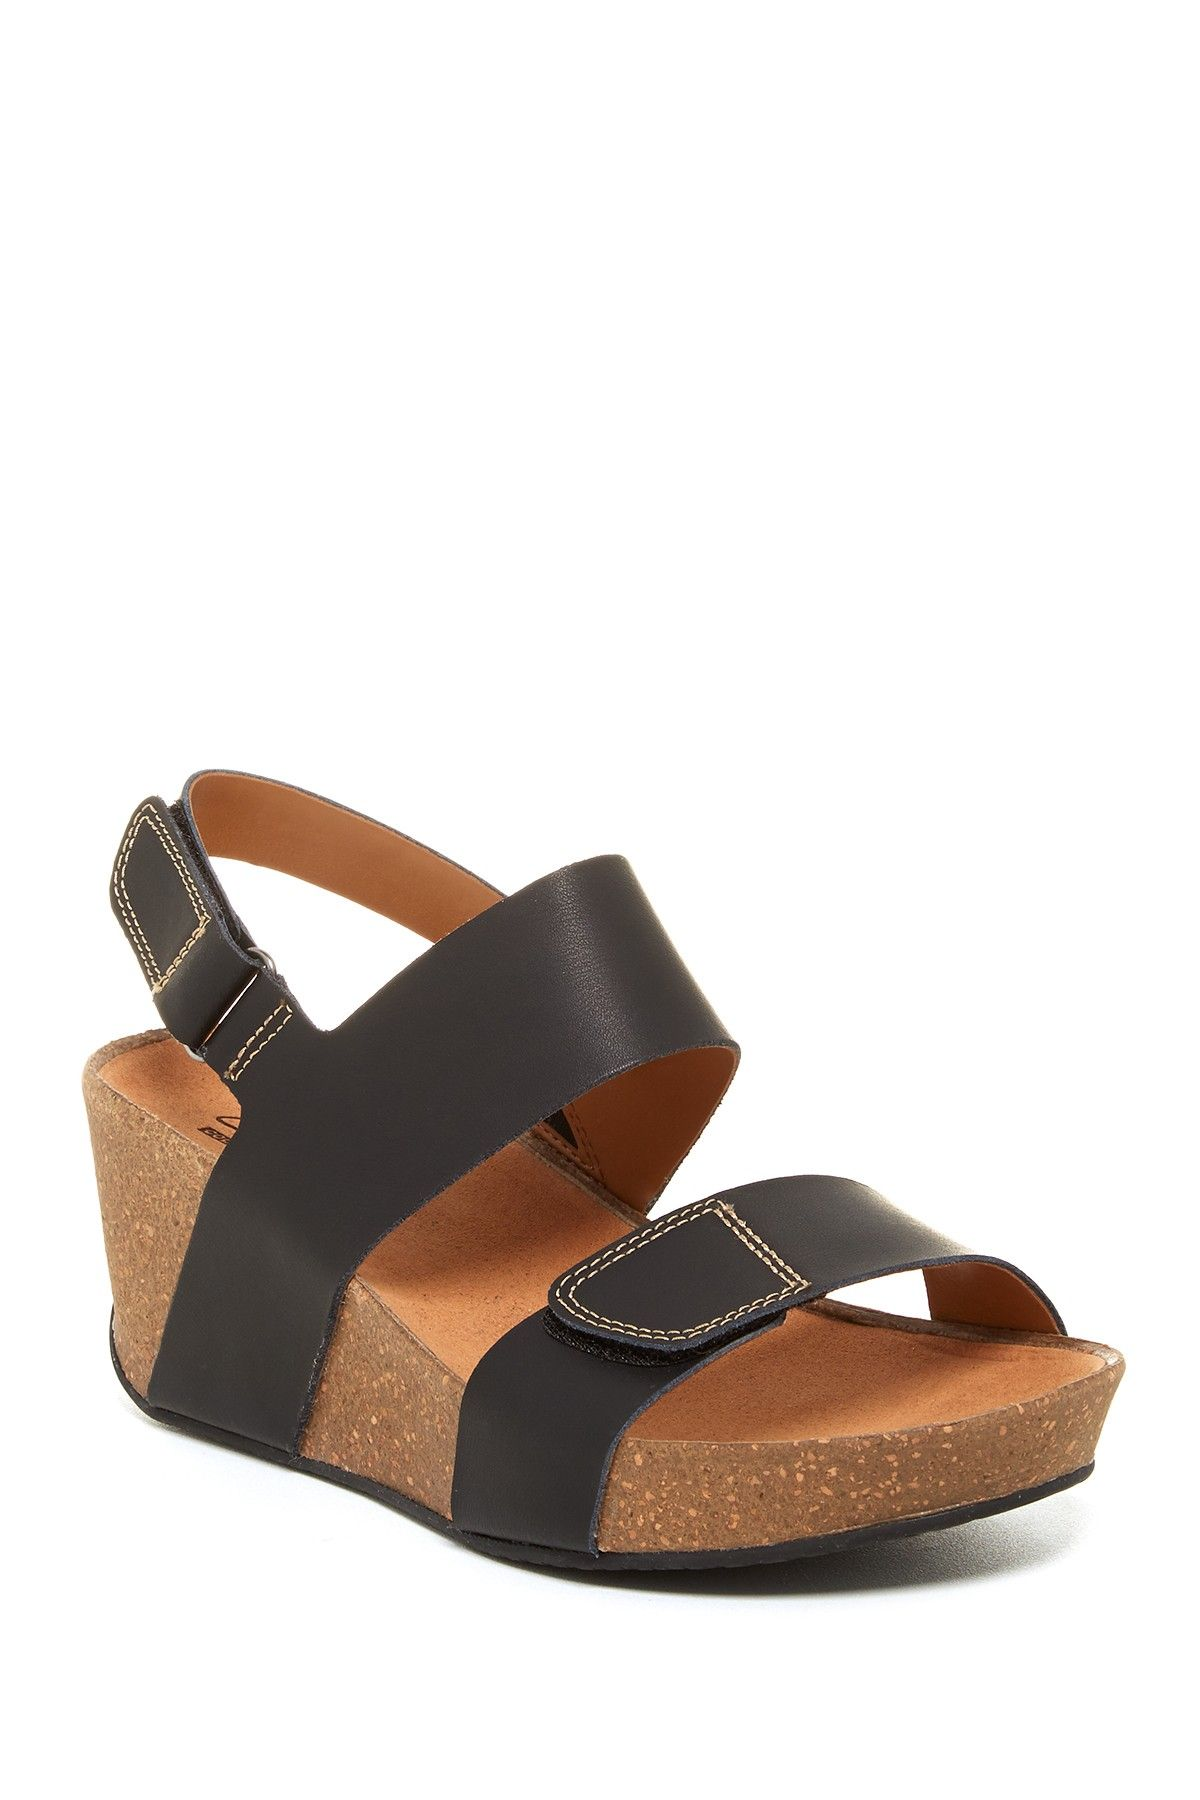 2891715eefde St. John s Bay® Karma Wedge Mary Janes found at  JCPenney